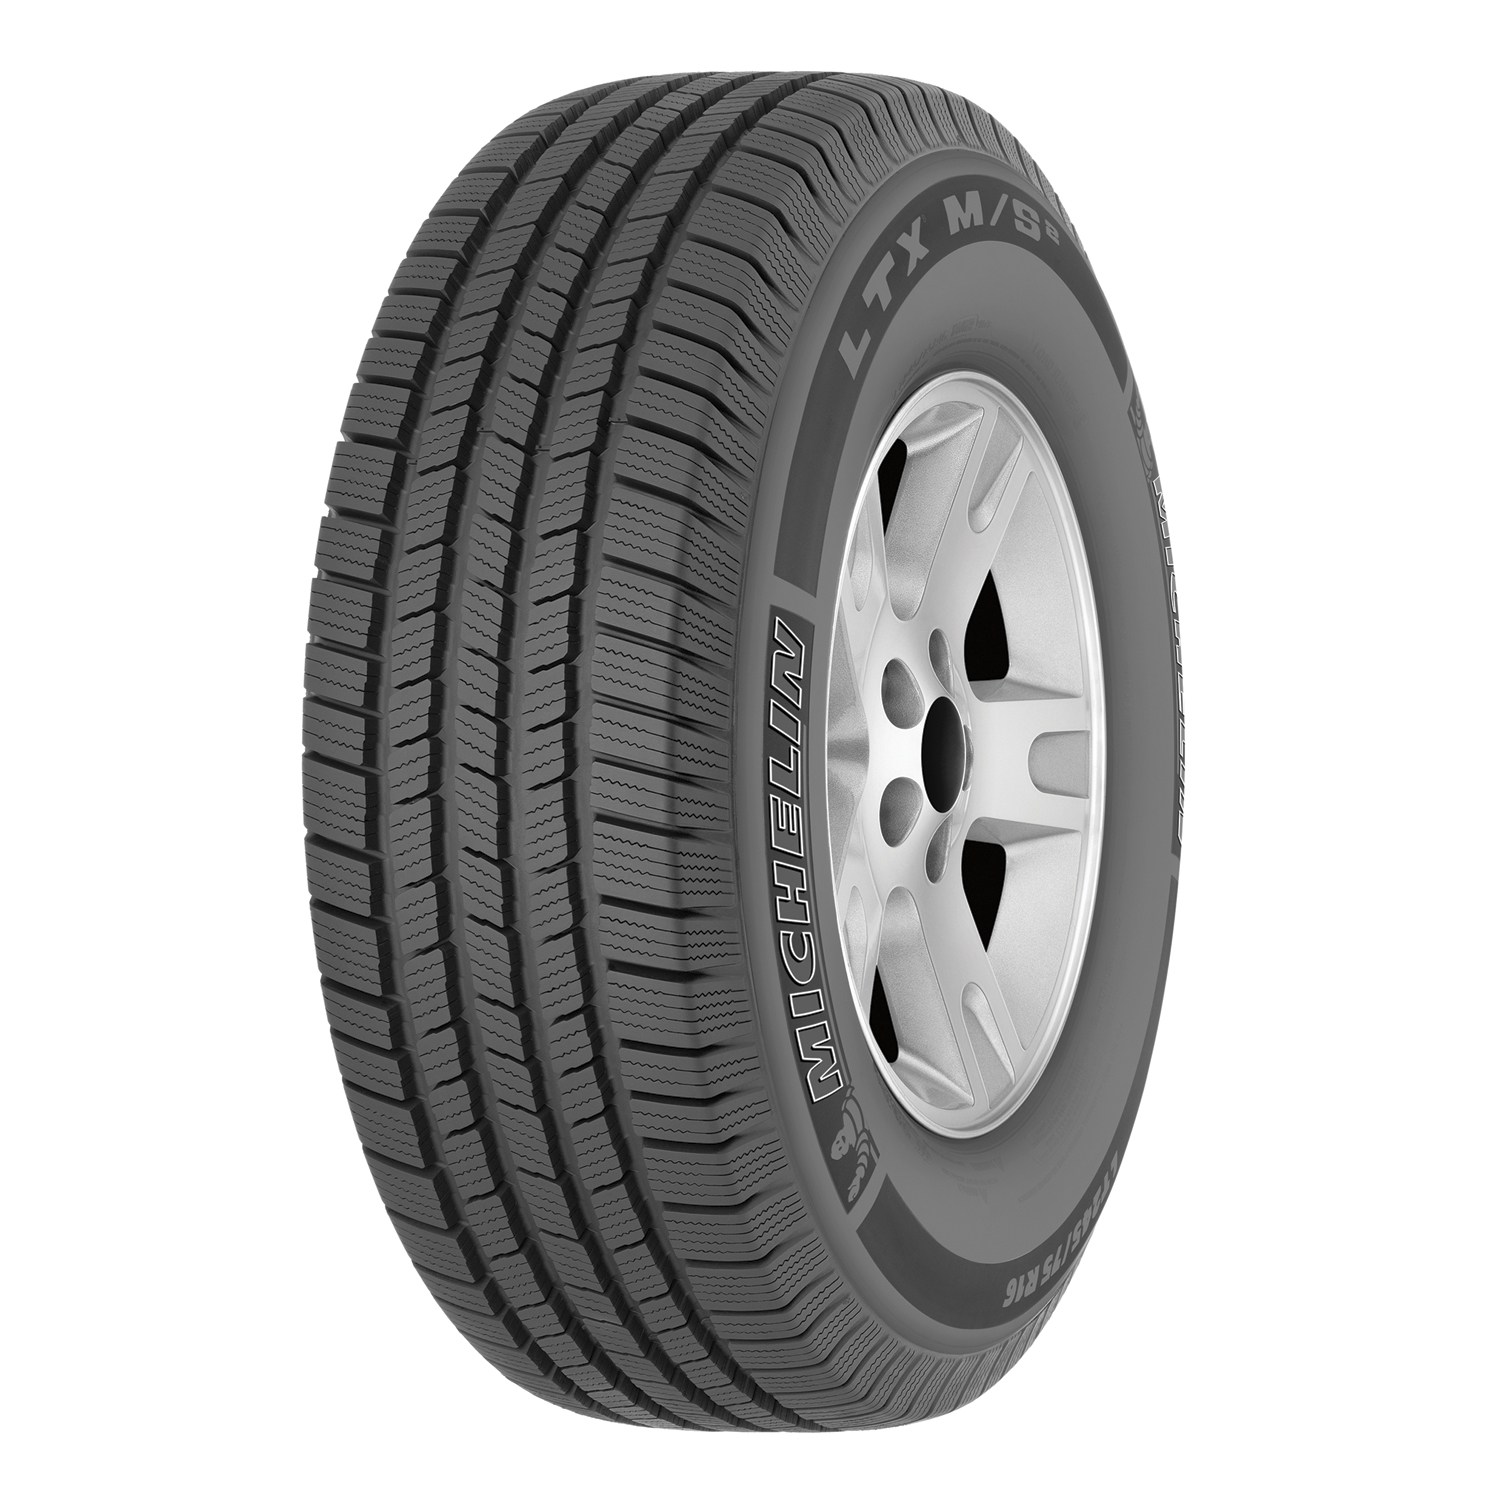 LTX M/S2 - P265/65R17 110T RWL - All Season Tire